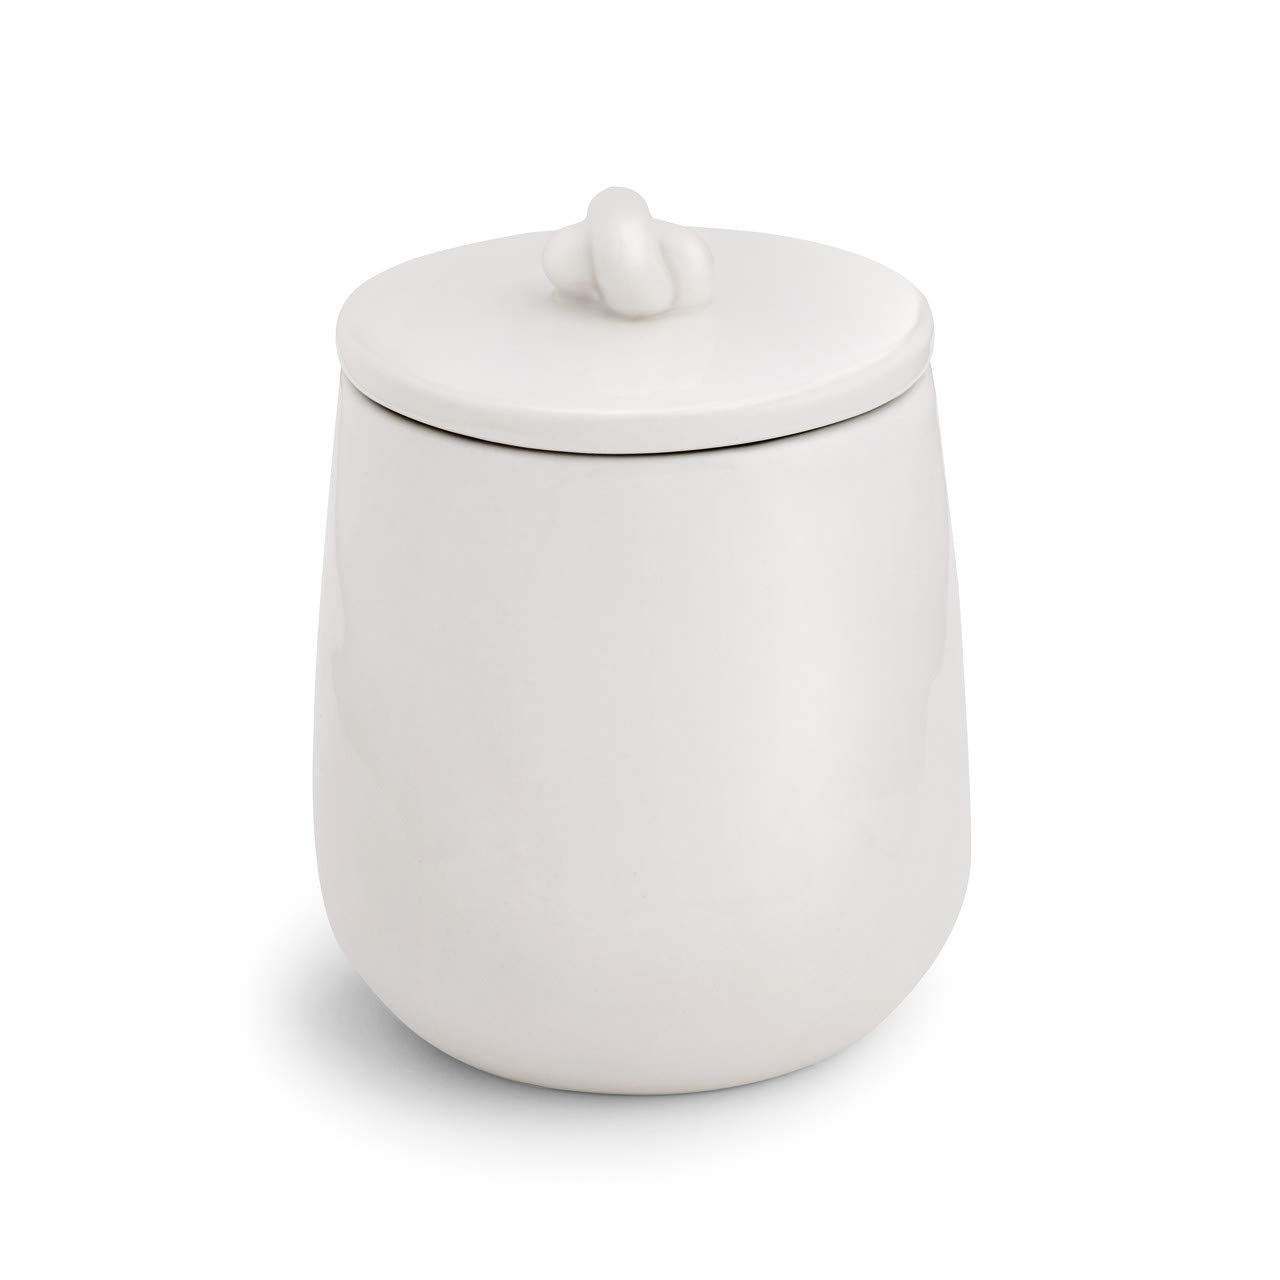 Woven Glossy White 4 x 3 Luxe Ceramic Stoneware Sugar Bowl With Knot Lid